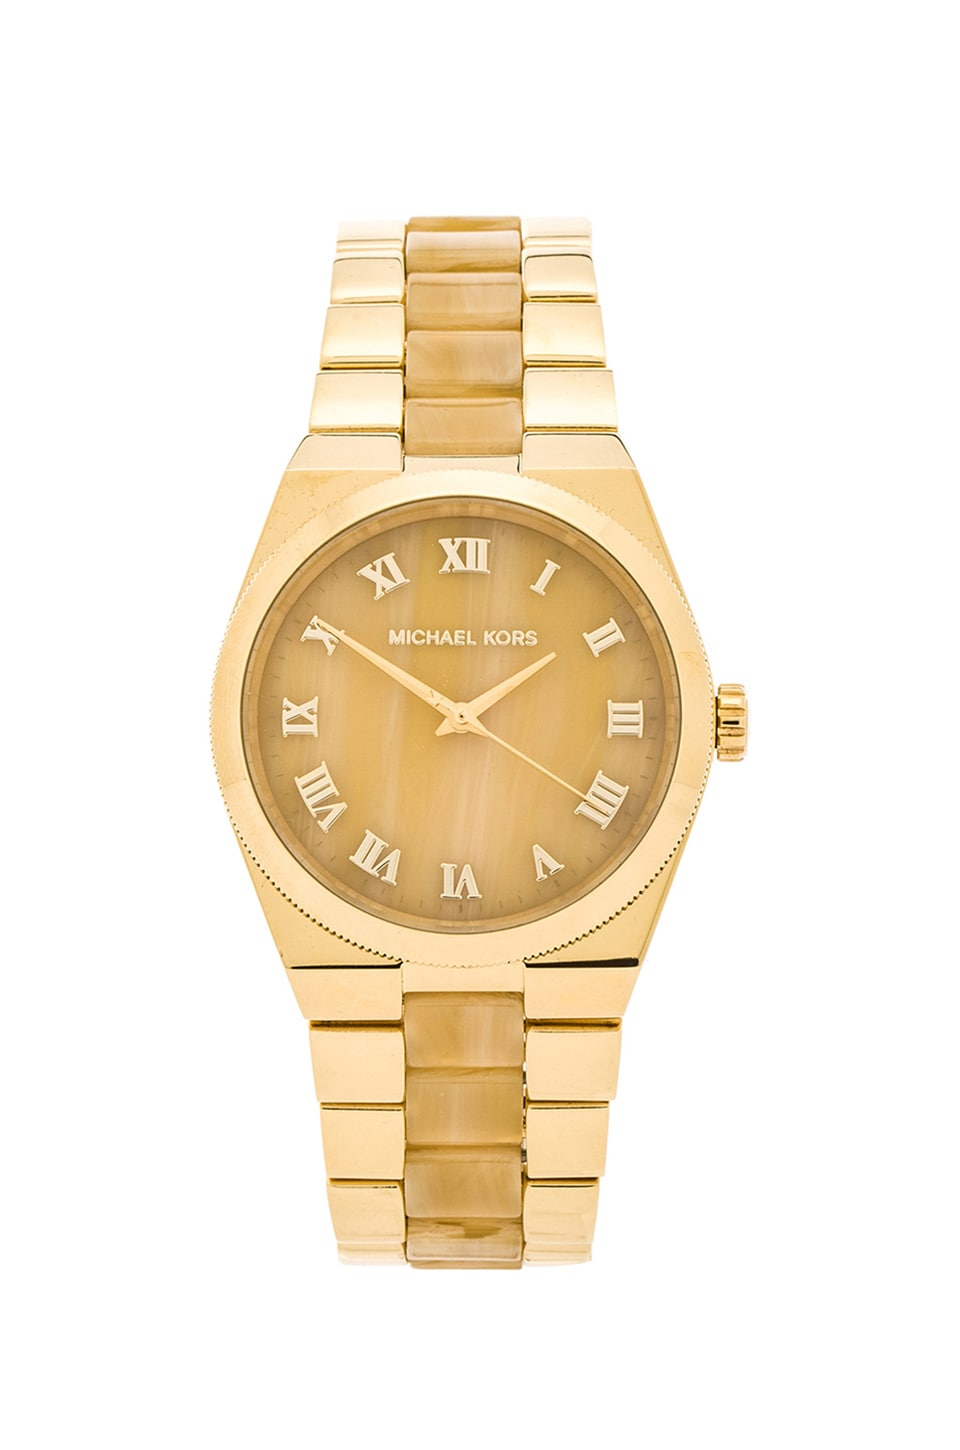 Michael Kors Channing in Gold & Horn